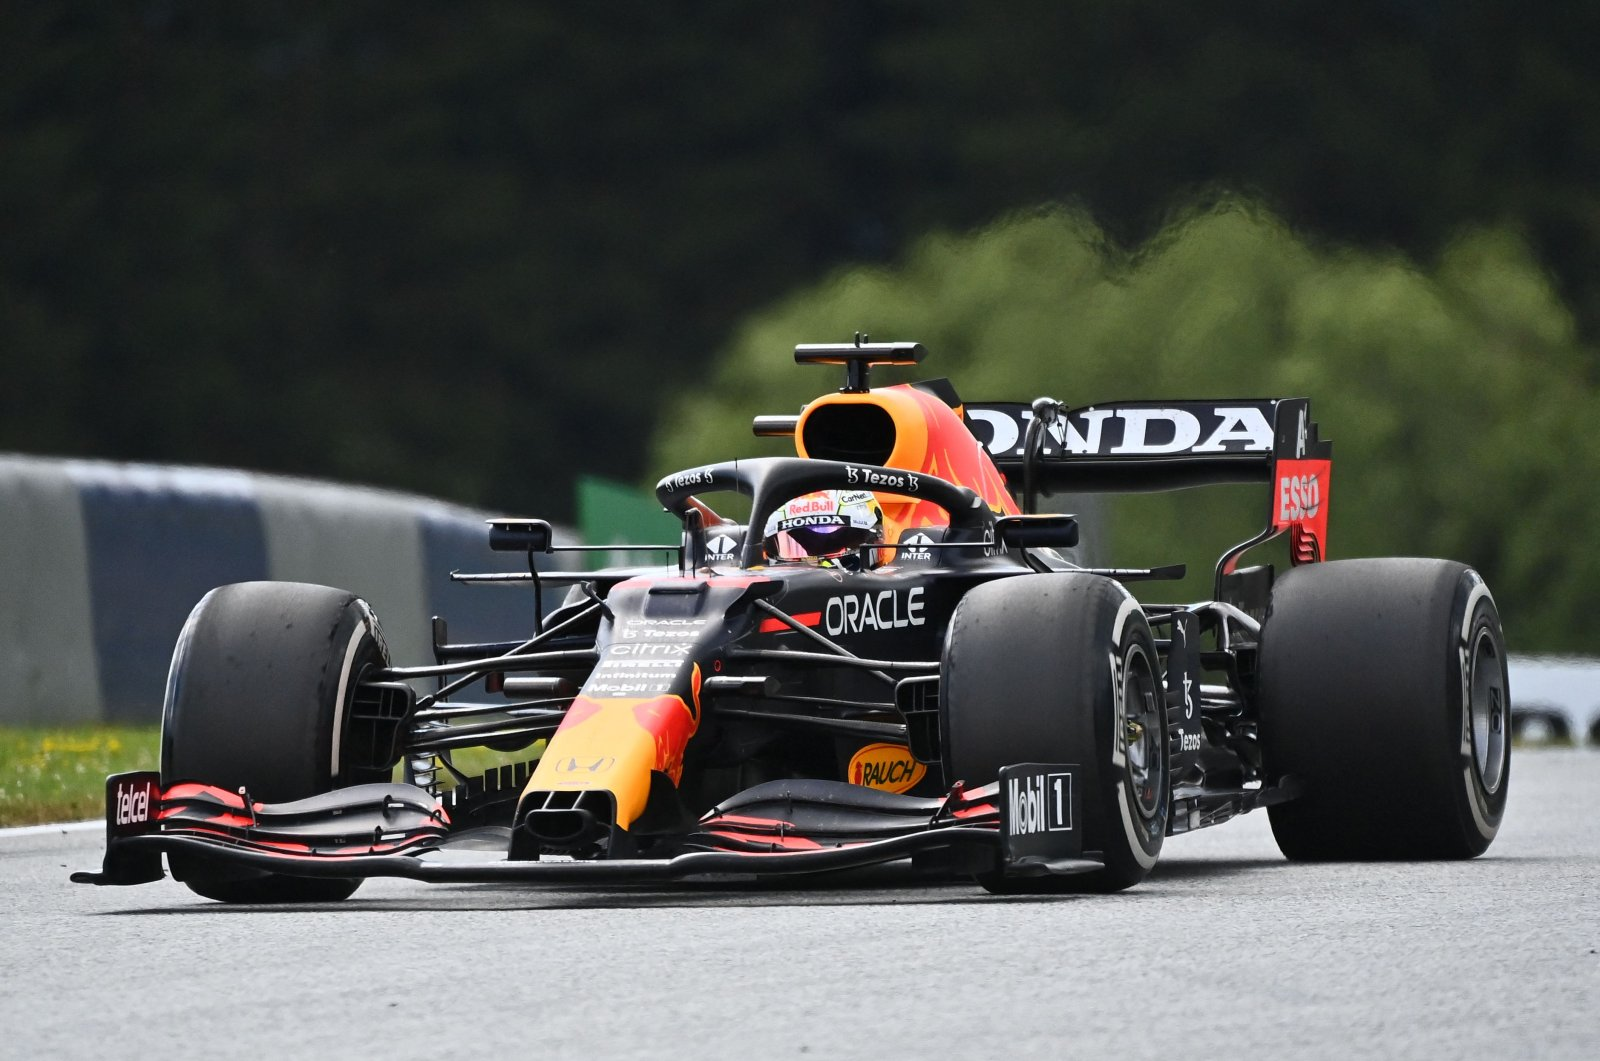 Red Bull's Dutch driver Max Verstappen competes during the F1 Styrian Grand Prix at the Red Bull Ring race track in Spielberg, Austria, June 27, 2021. (AFP Photo)